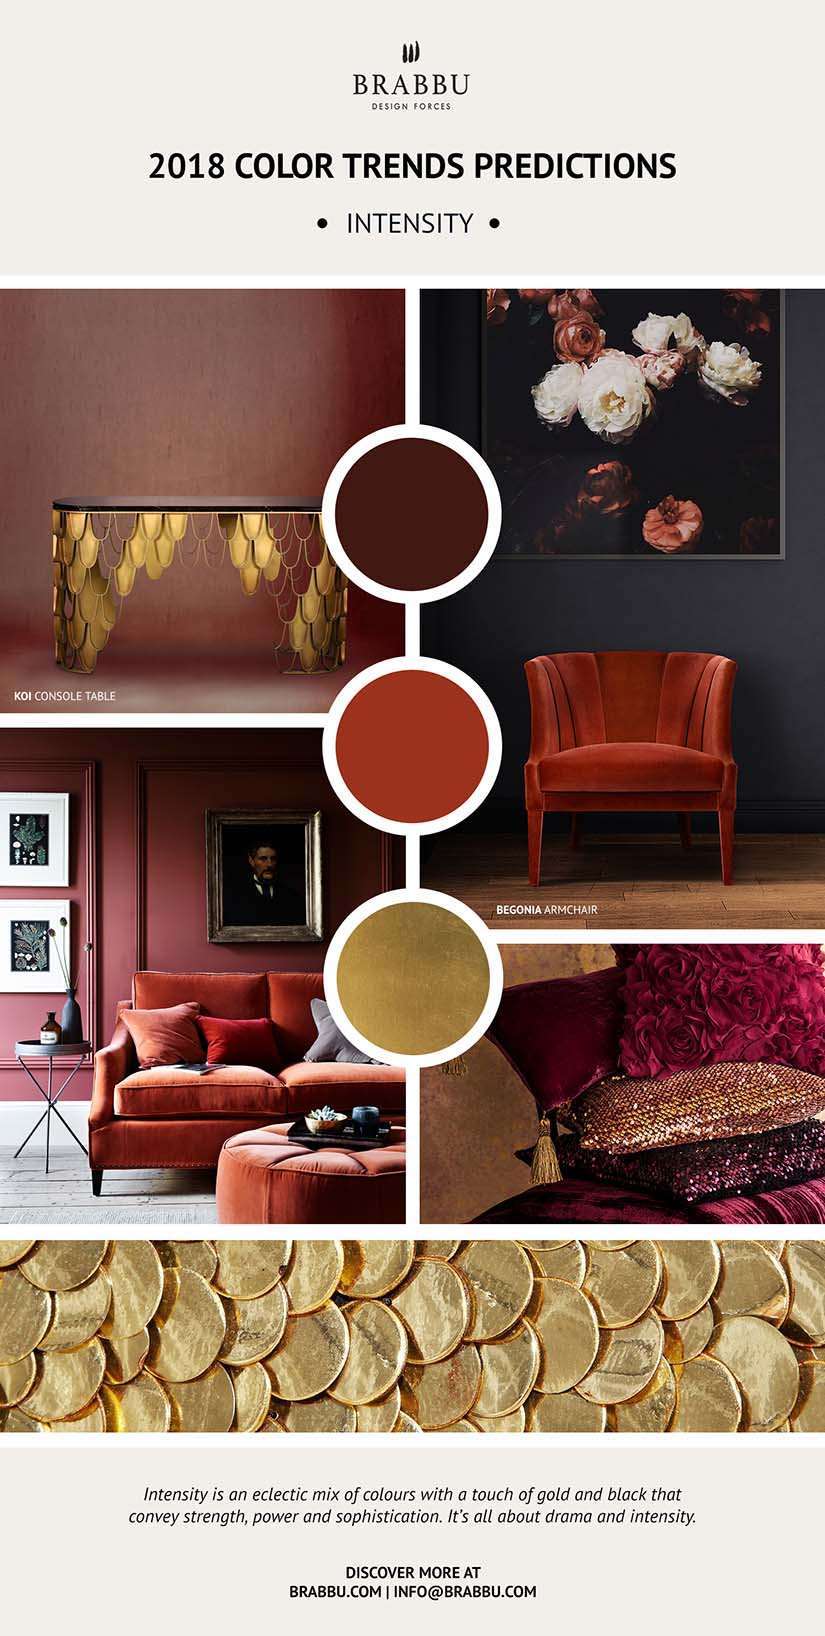 These Pantone Color Trends Will Spice Up Spring 2018  color trends These Pantone Color Trends Will Spice Up Spring 2018  068301604881EAC713F7E550D55B211103D9916E88E1CED087 pimgpsh fullsize distr